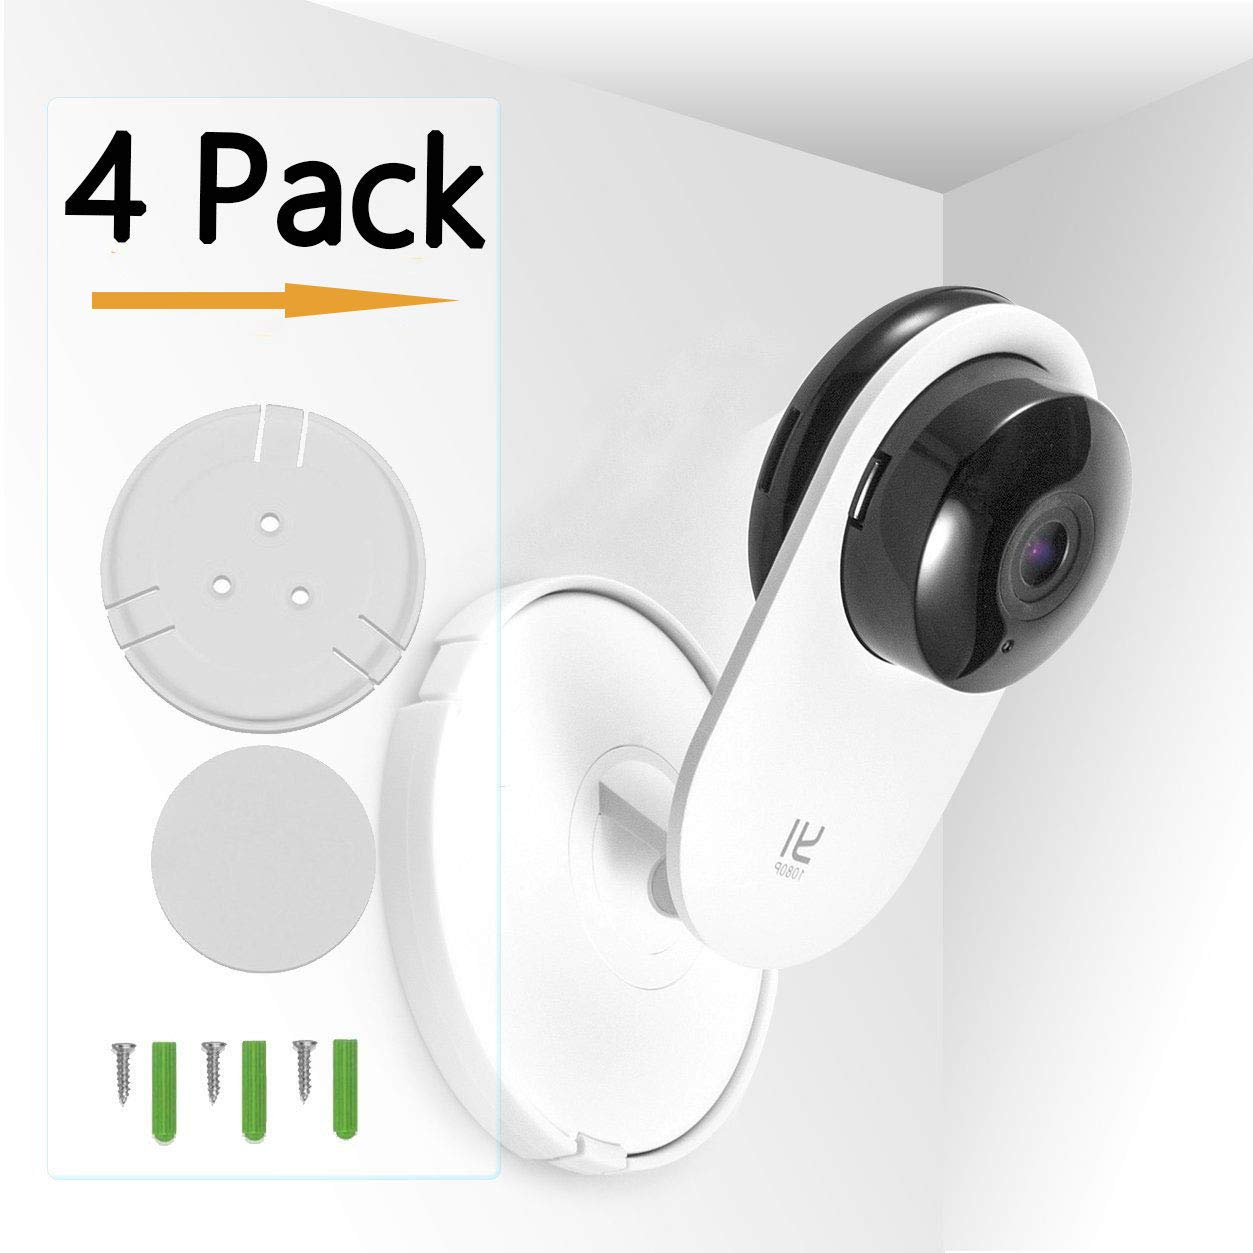 (Pack of 4) Aboom Yi Home Camera Wall Mount, Customized Stand Bracket for YI 1080p/720p Home Camera ,Designed for USA (NOT Included Camera)